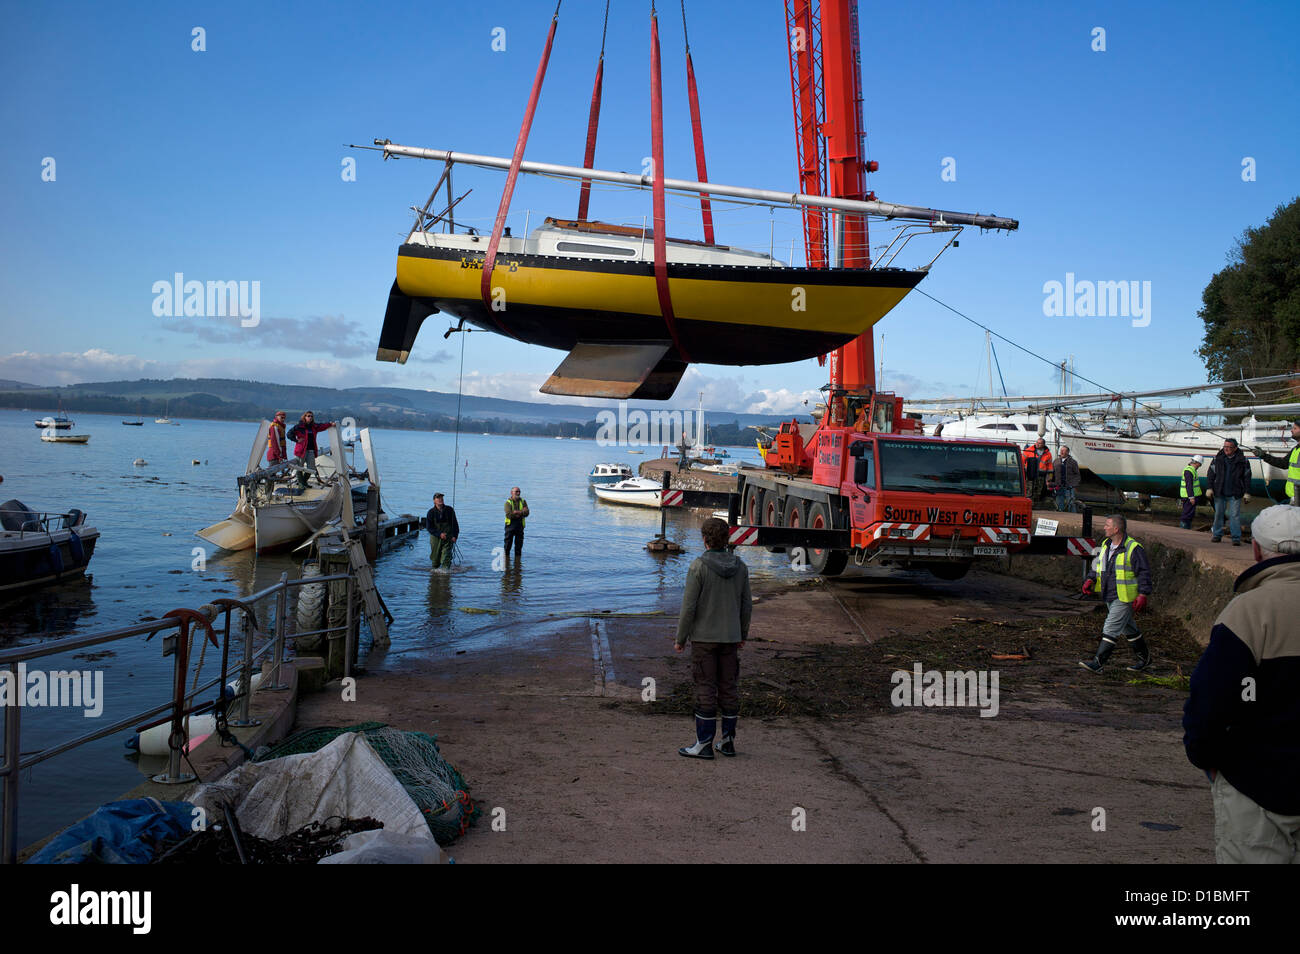 Lifting boats out of the water for winter maintenance, Lympstone, Exe Estuary, Devon, UK - Stock Image